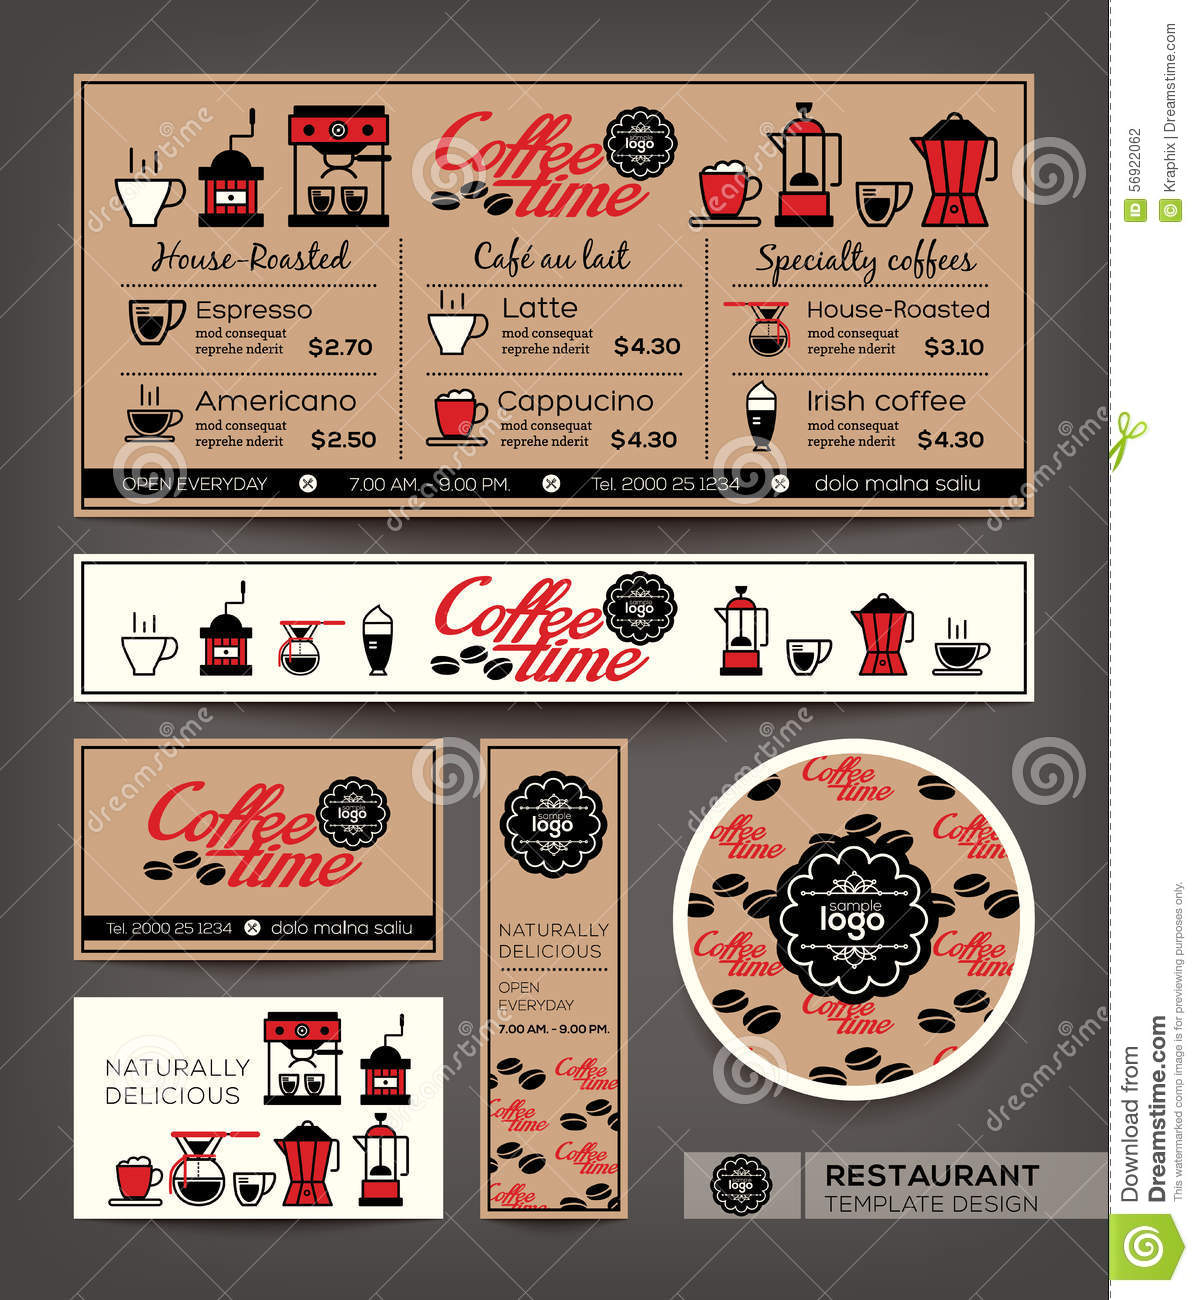 Coffee Shop Cafe Set Menu Design Template Stock Vector